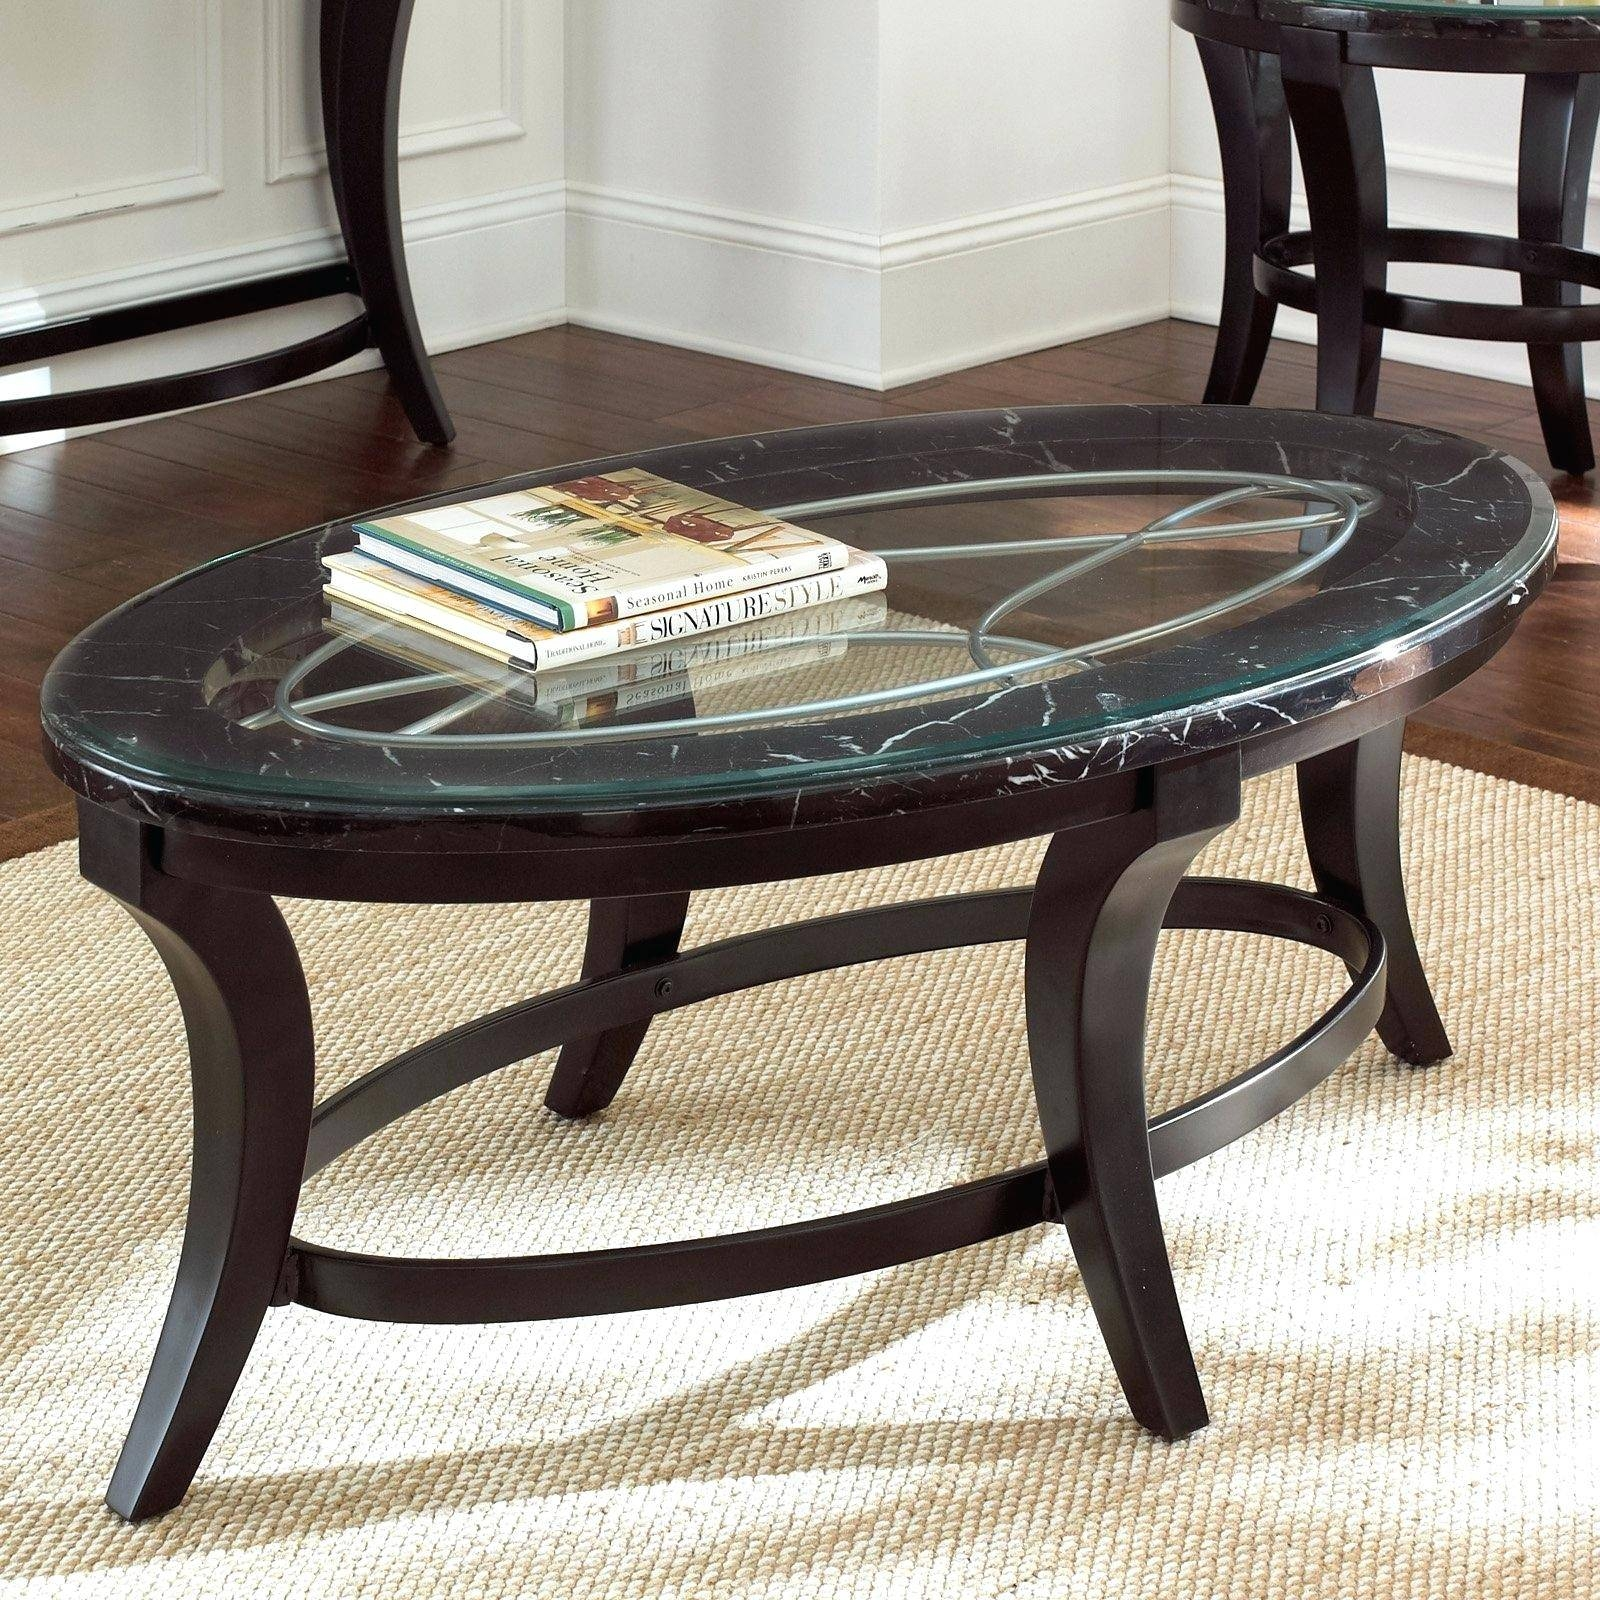 Coffee Table ~ Glass Coffee Table With Shelves Decor Rustic And in Coffee Tables With Shelves (Image 7 of 30)